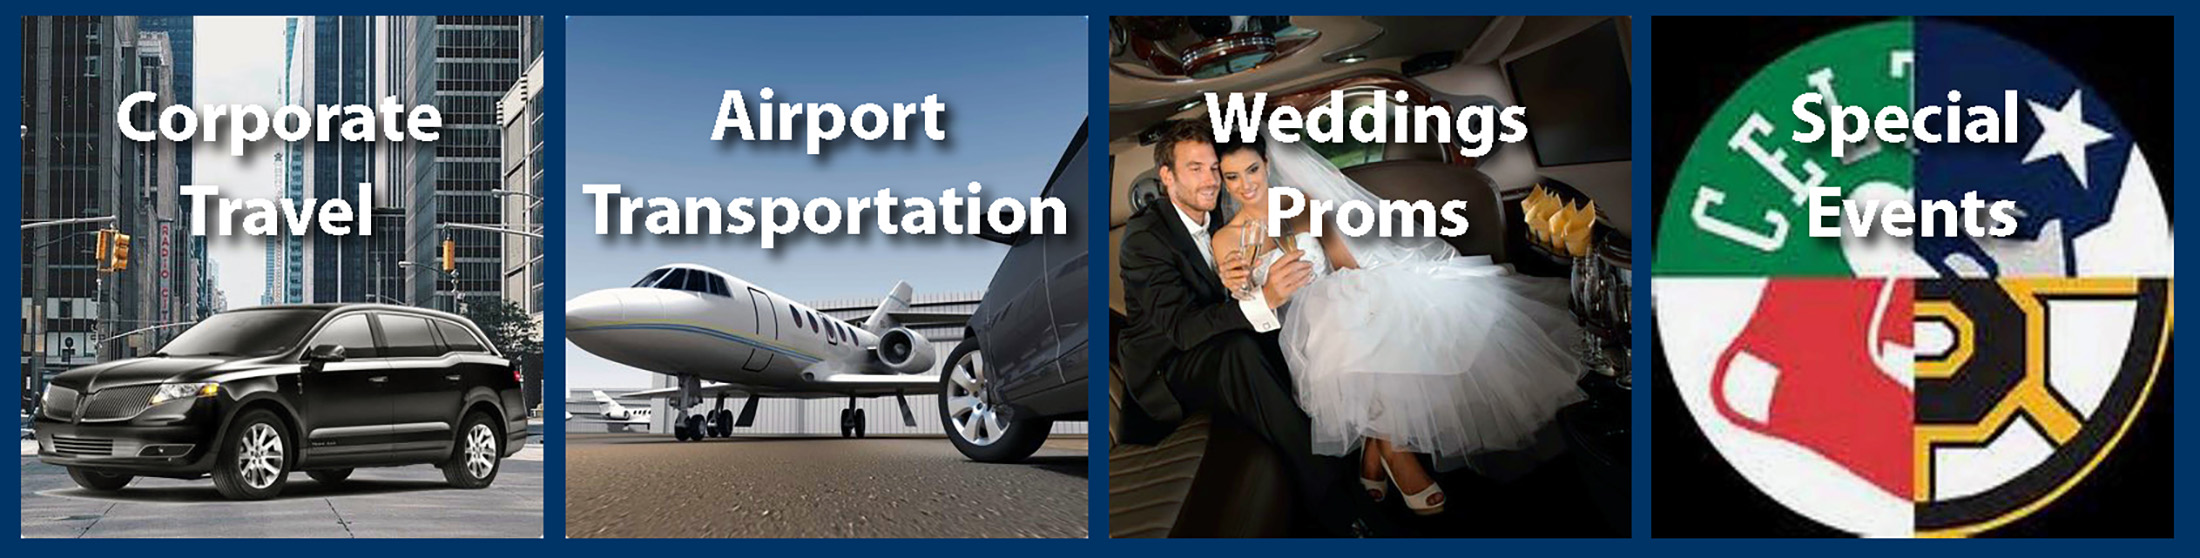 Above All Transportation-4Up-CorporateTravel-AirportTransportation-WeddingsProms-SportingEvents-Concerrts